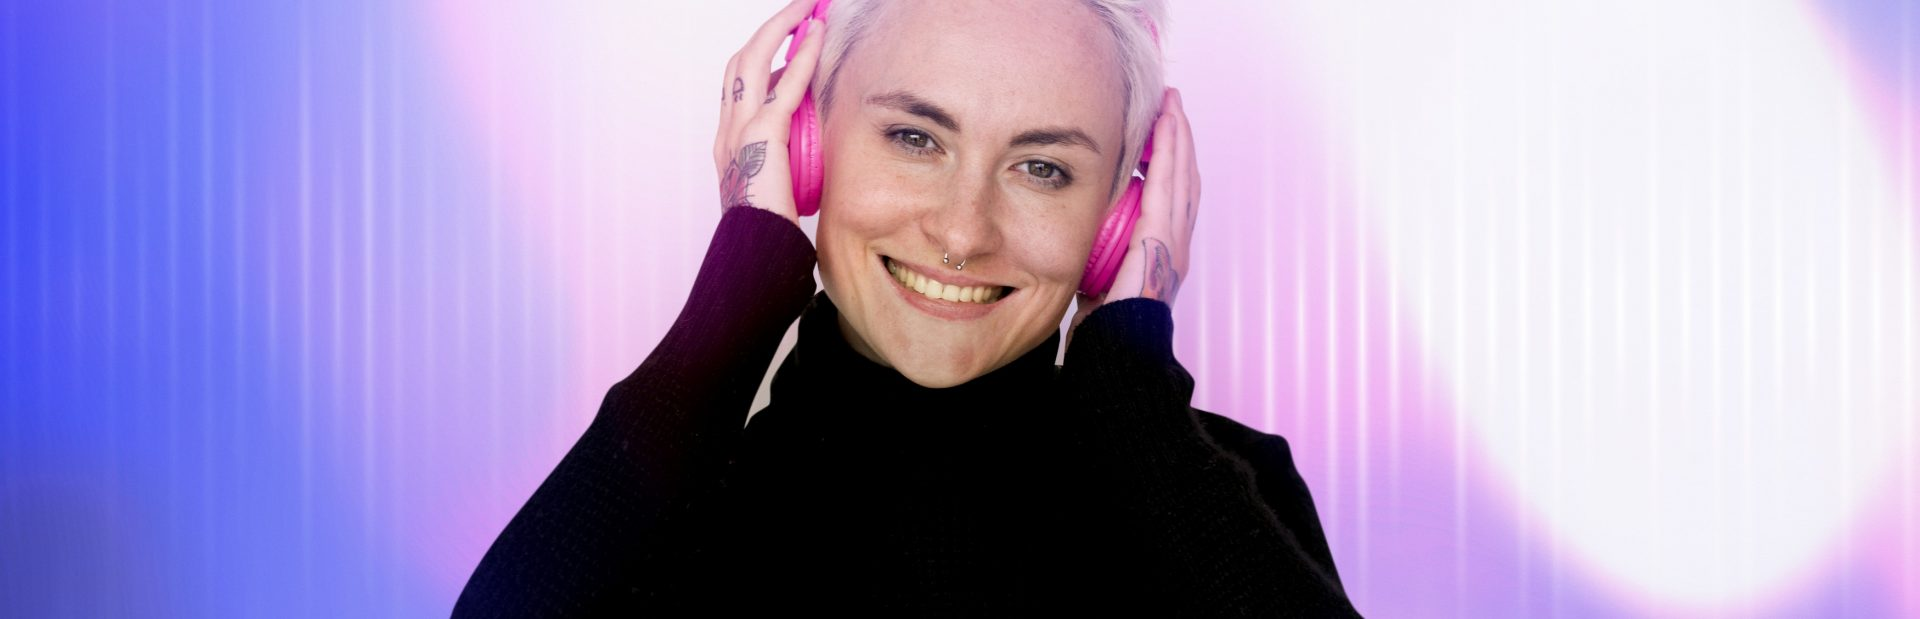 Woman listening to music thinking positive thoughts